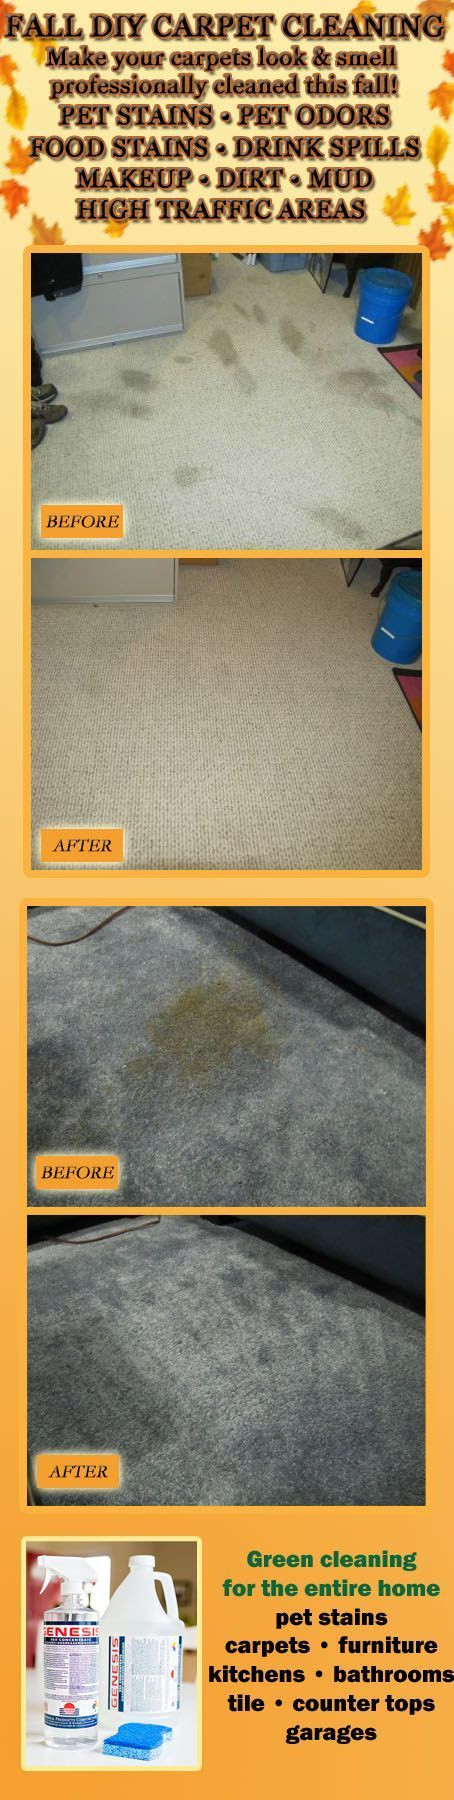 Stanley Steemer Hardwood Floor Cleaning Cost Of 556 Best Carpet Cleaning before and after Images On Pinterest Regarding Diy Carpet Cleaning solution for Machines or for Spot Cleaning Genesis 950 is the Best Carpet Cleaner to Make Your Carpets Look and Smell Professionally